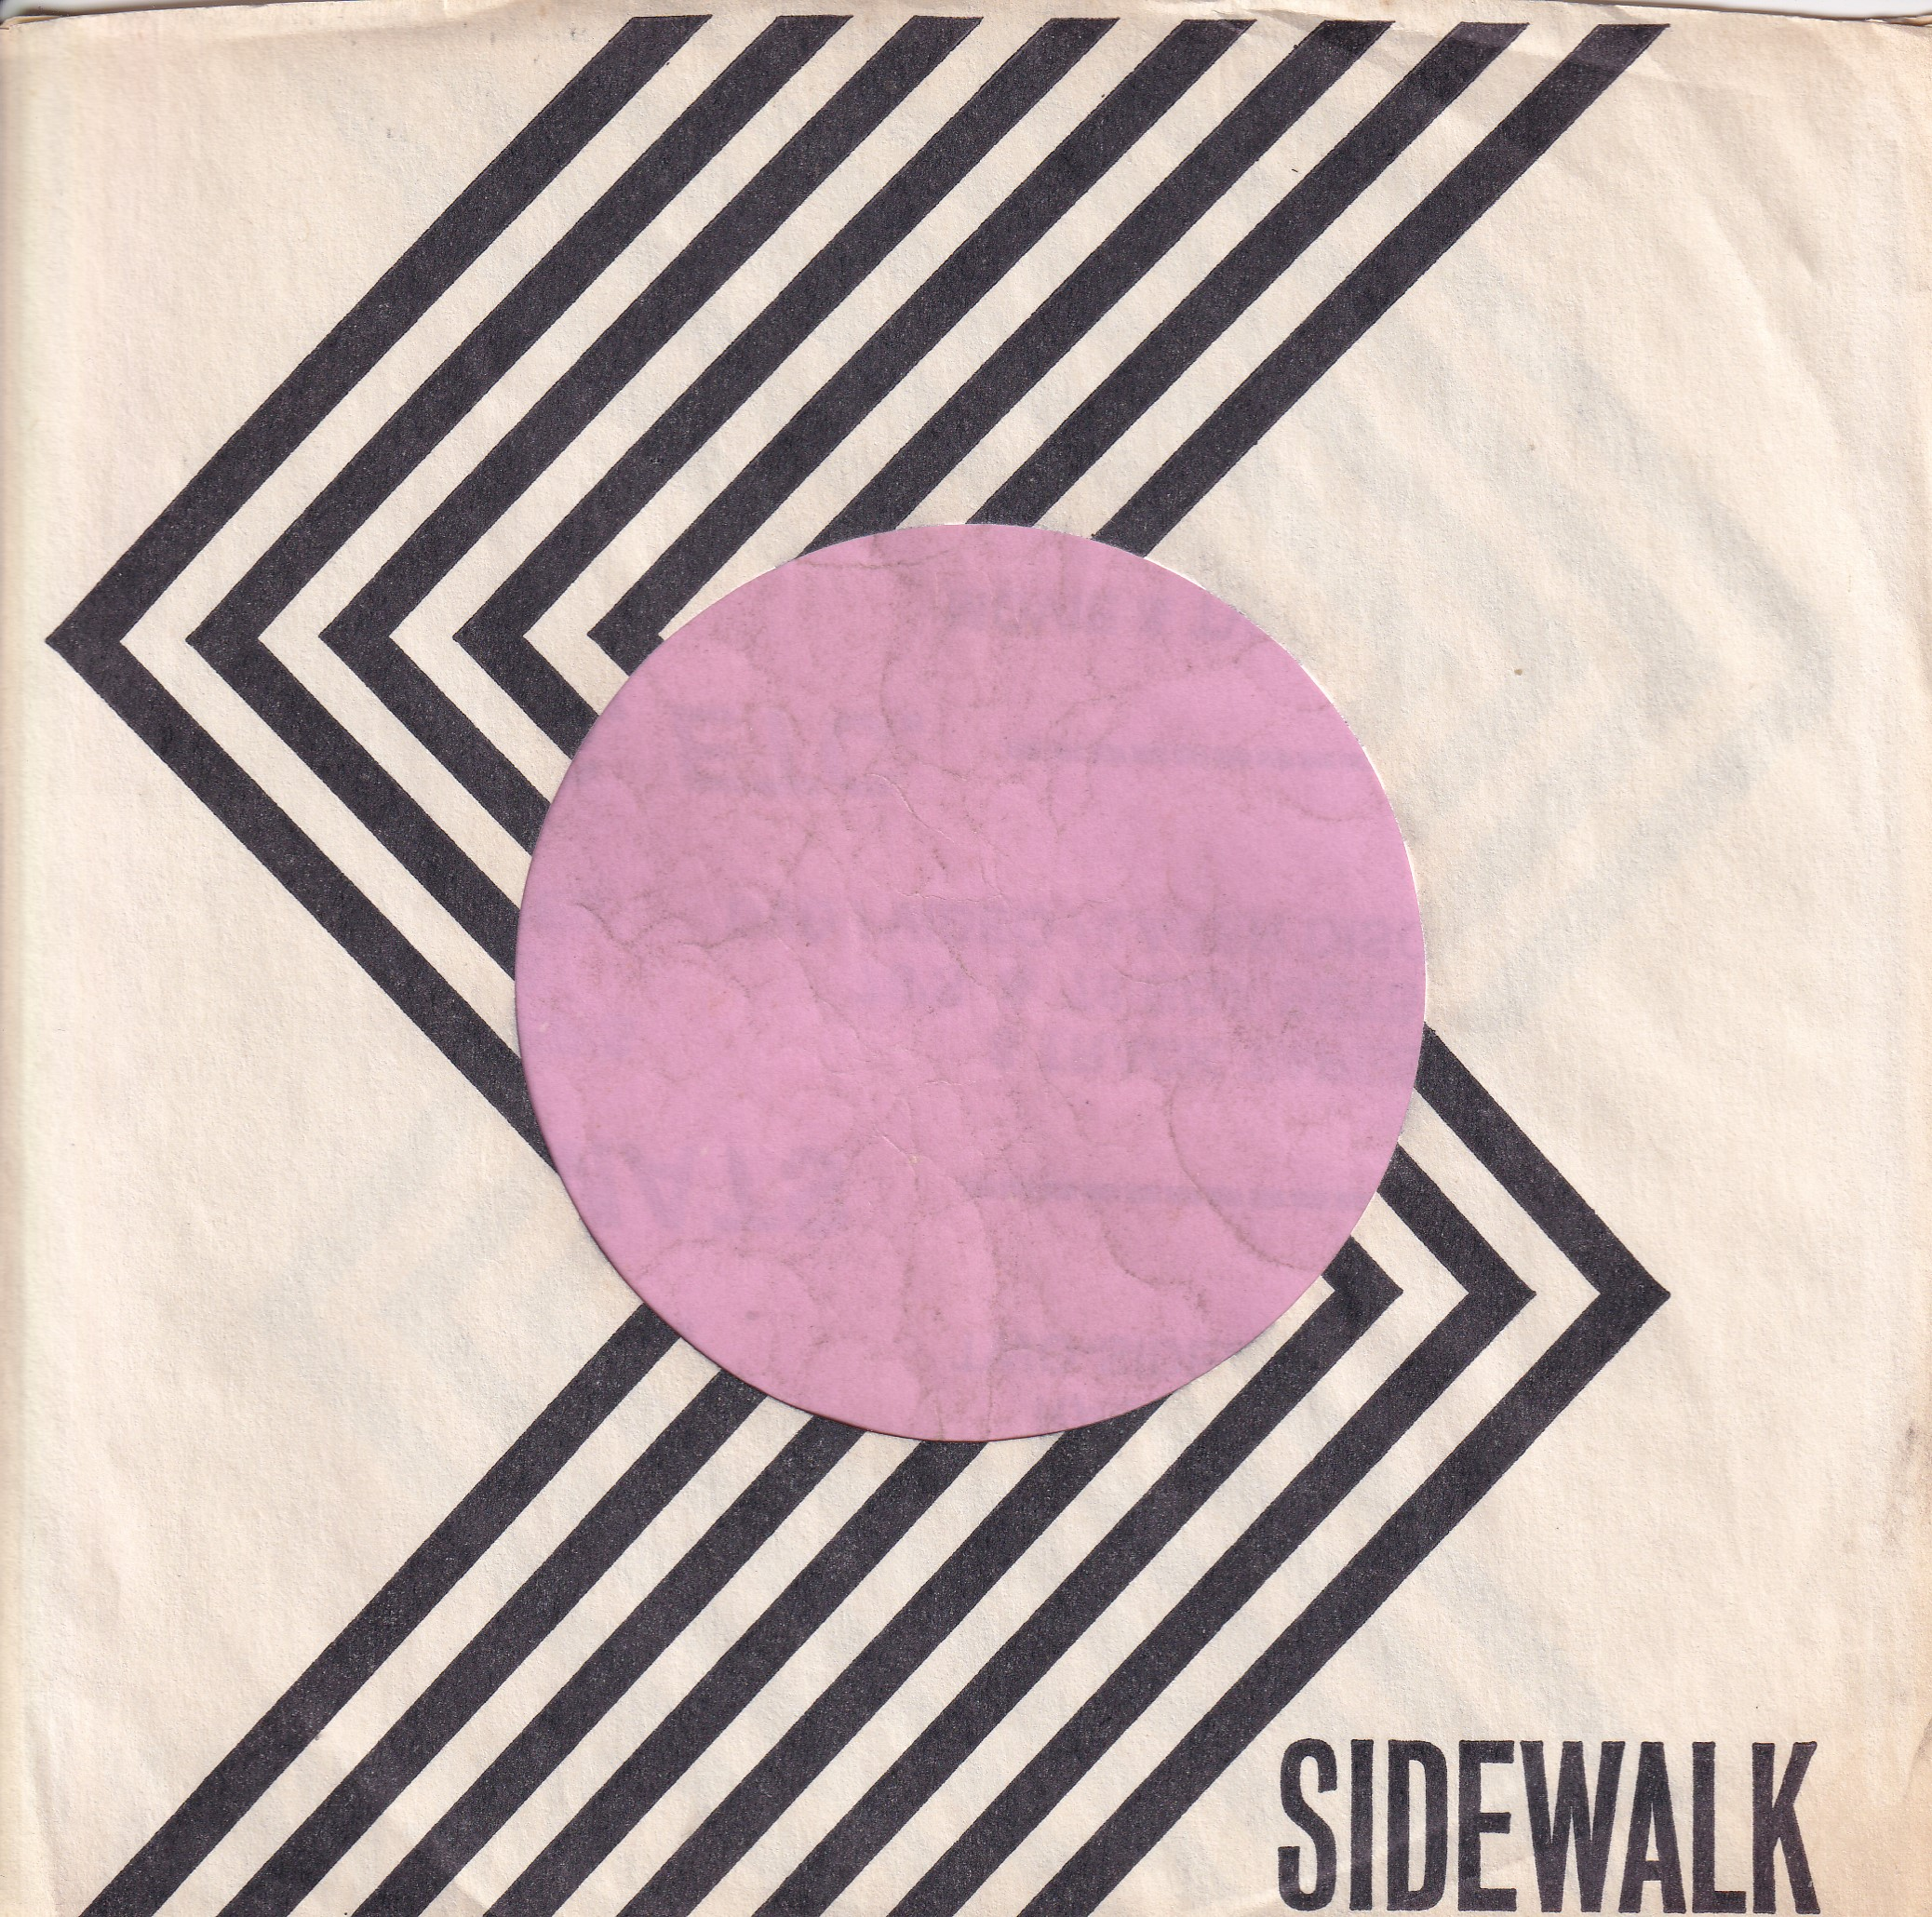 Sidewalk U.S.A. No Address Details Company Sleeve 1966 – 1968